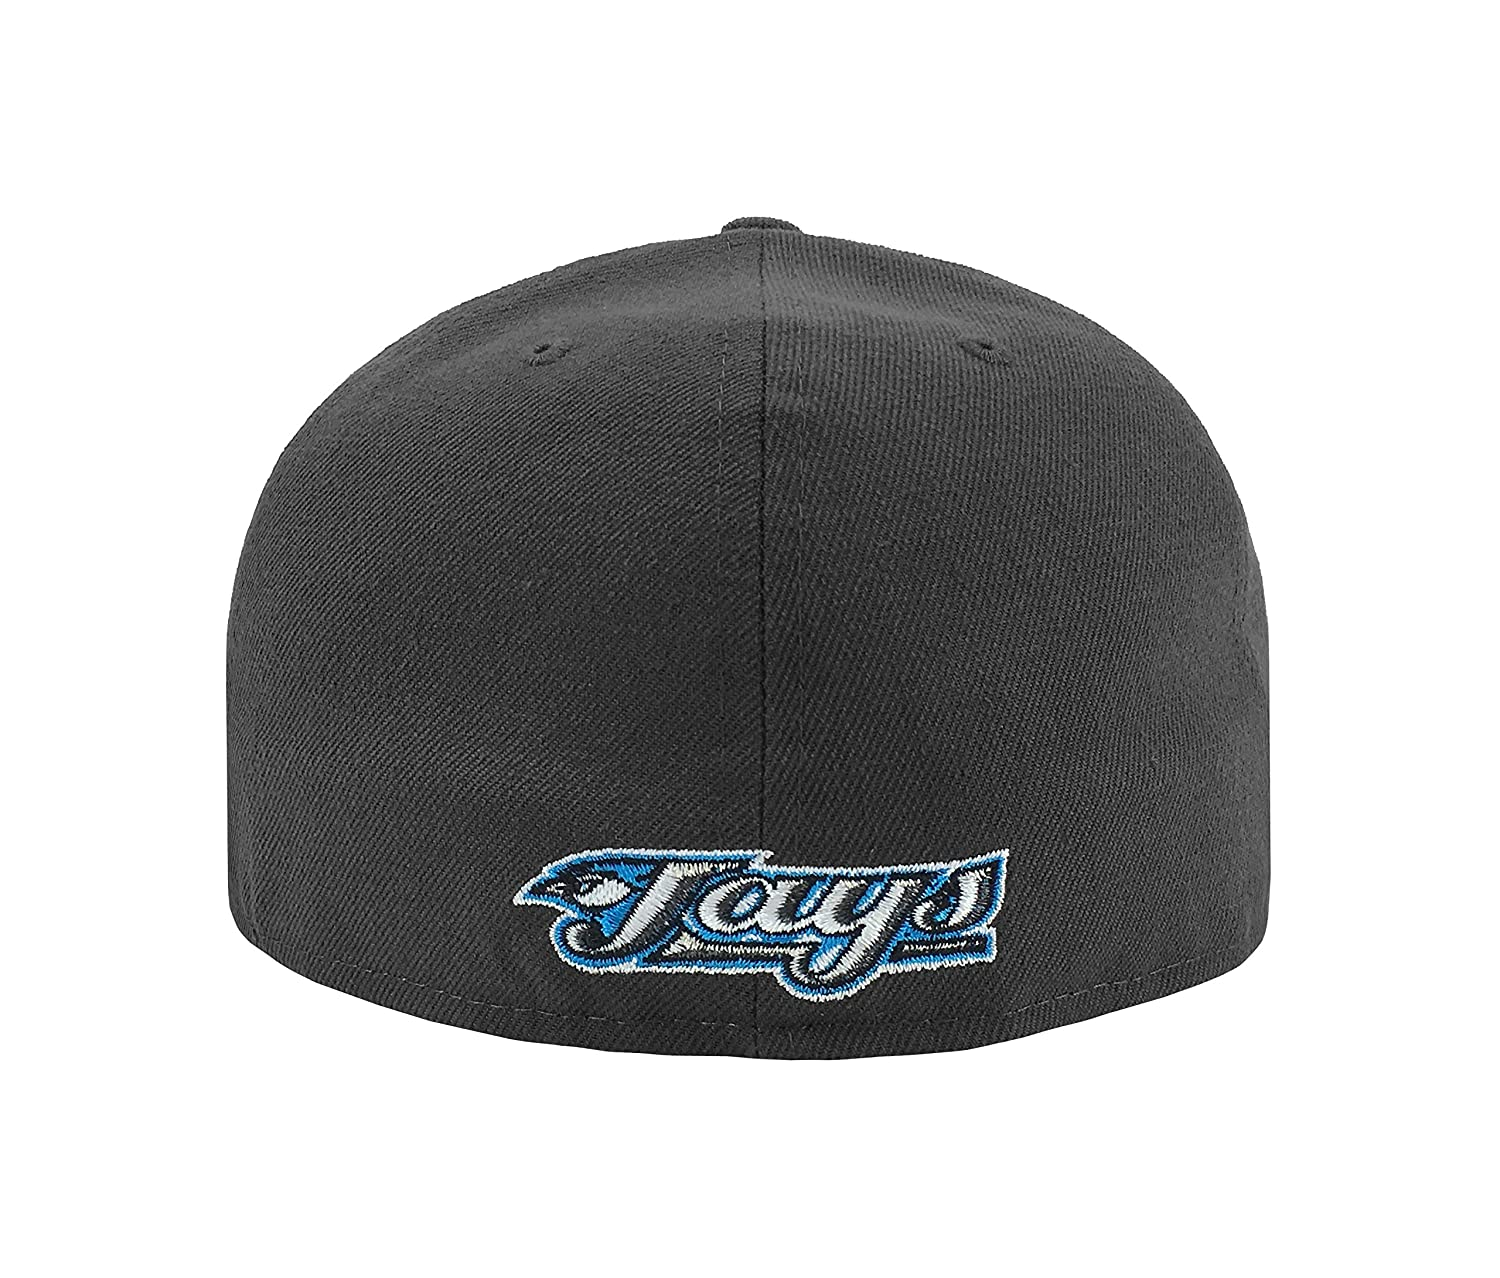 ... release date new era 59fifty hat mlb toronto blue jays cooperstown gray  graph team cap at 5d6479a49f3d